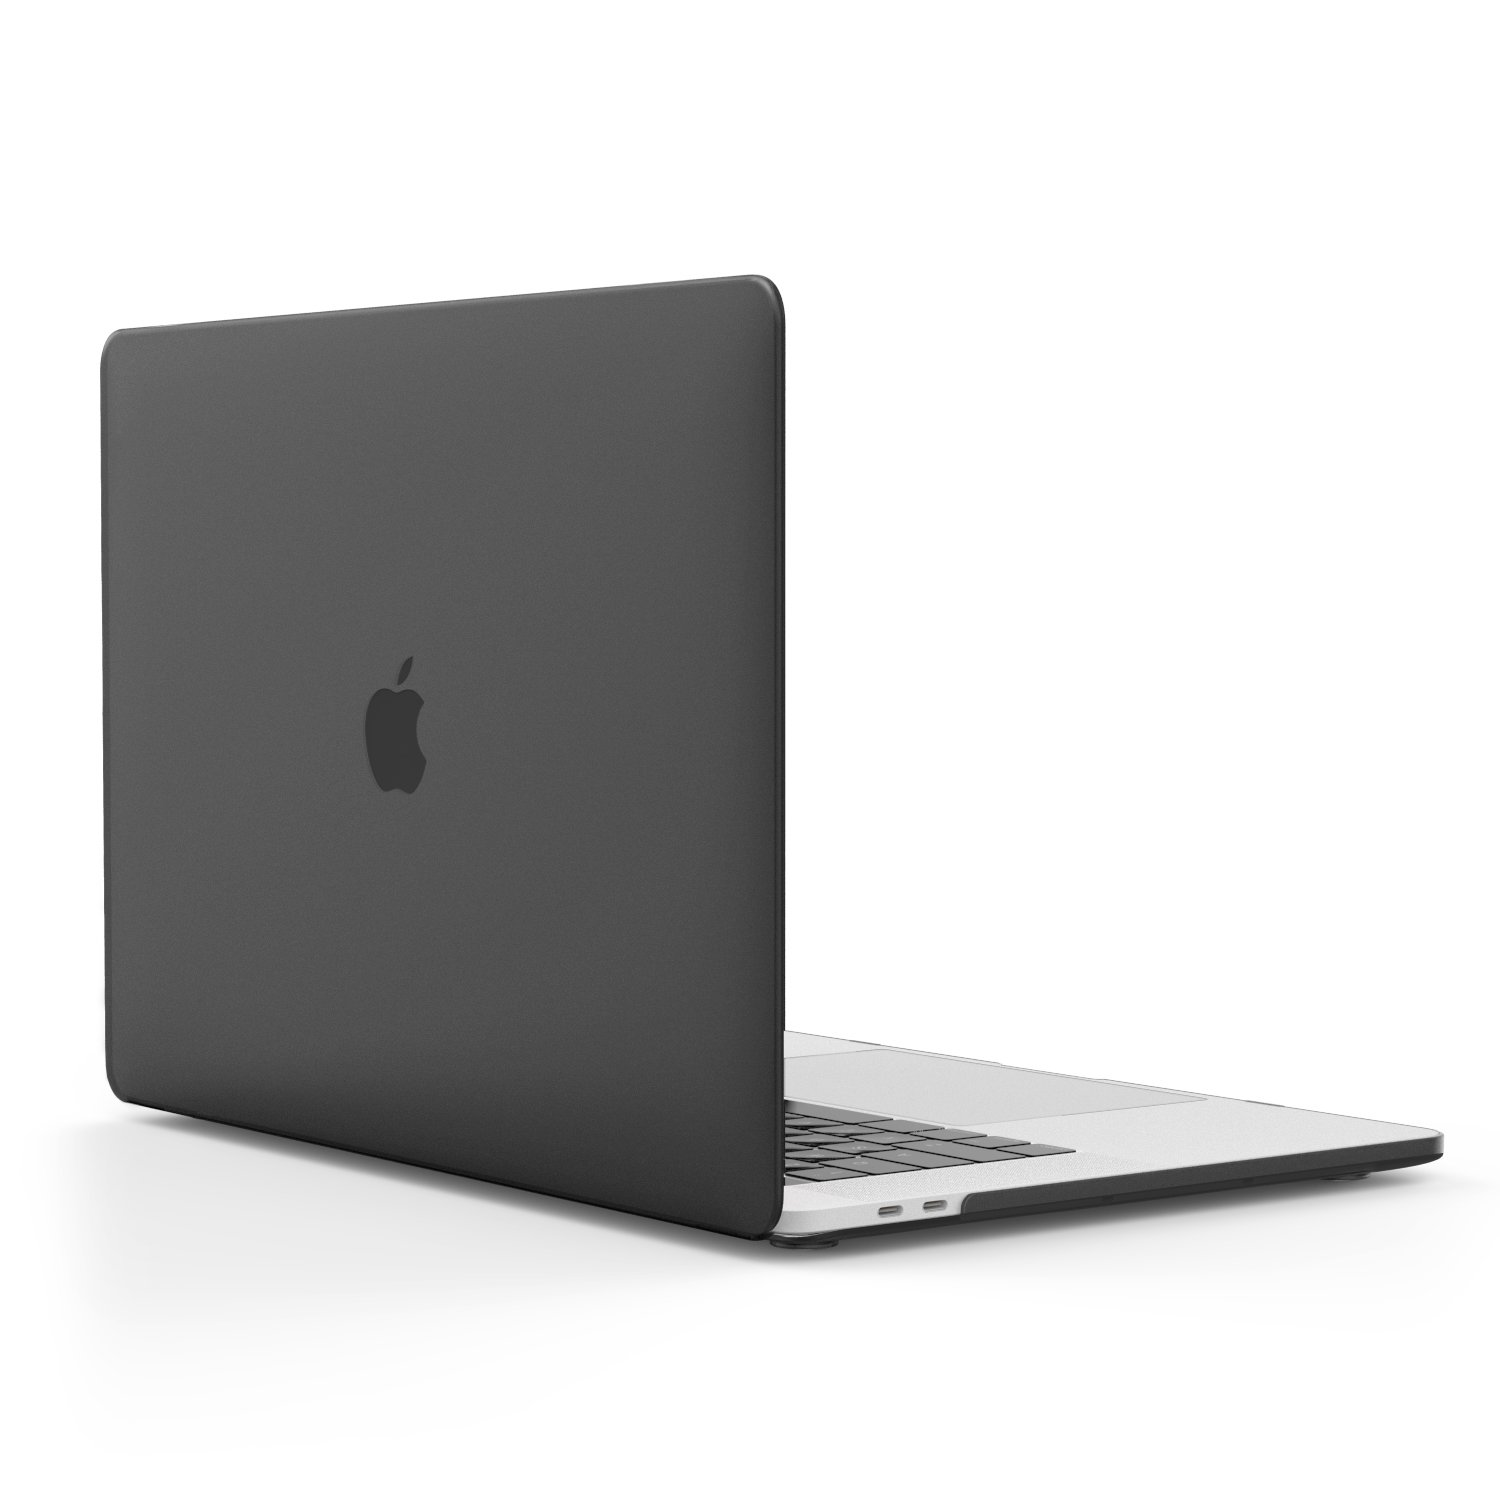 MacBook Pro 15 Case 2018/2017/2016, MoKo Slim PC Matte Frost Hard Shell Protective Cover for NEWEST Release 2018/2017/2016 Apple MacBook Pro 15 Inch with Retina Display A1707 Laptop, Translucent Black